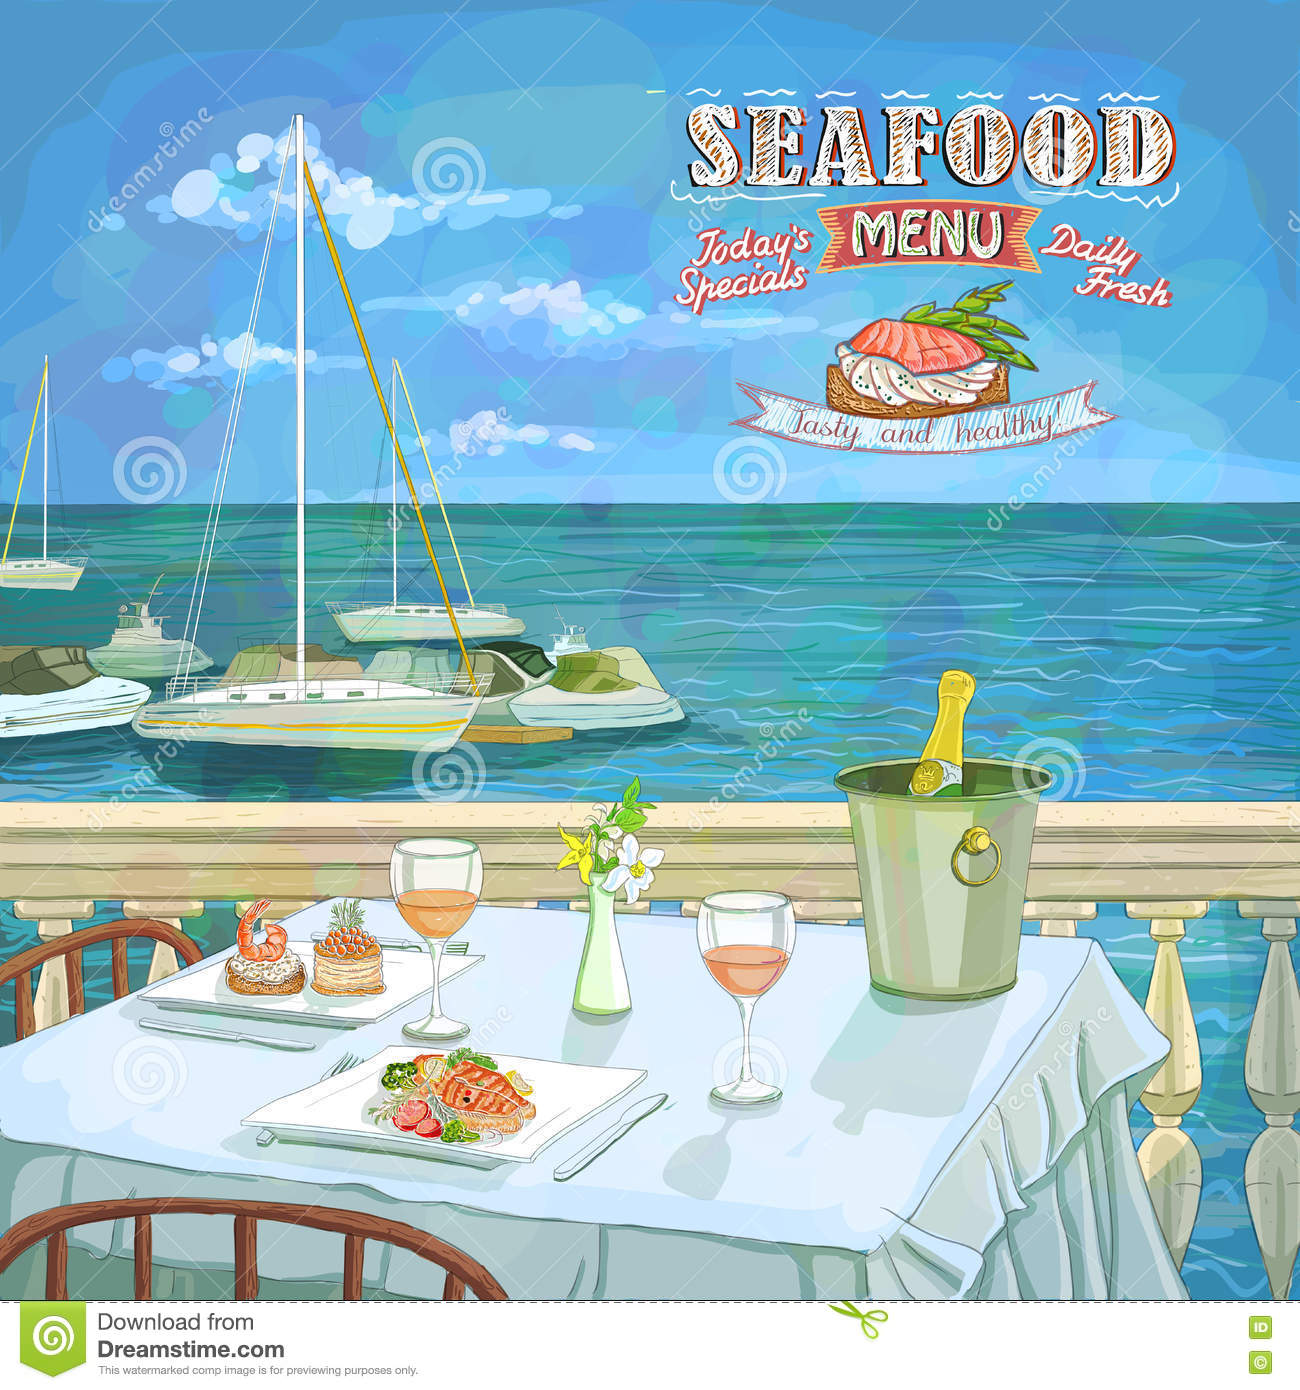 Restaurant table for two - Seafood Menu Hand Drawn Illustration Served Restaurant Table For Two On The Sea Beach